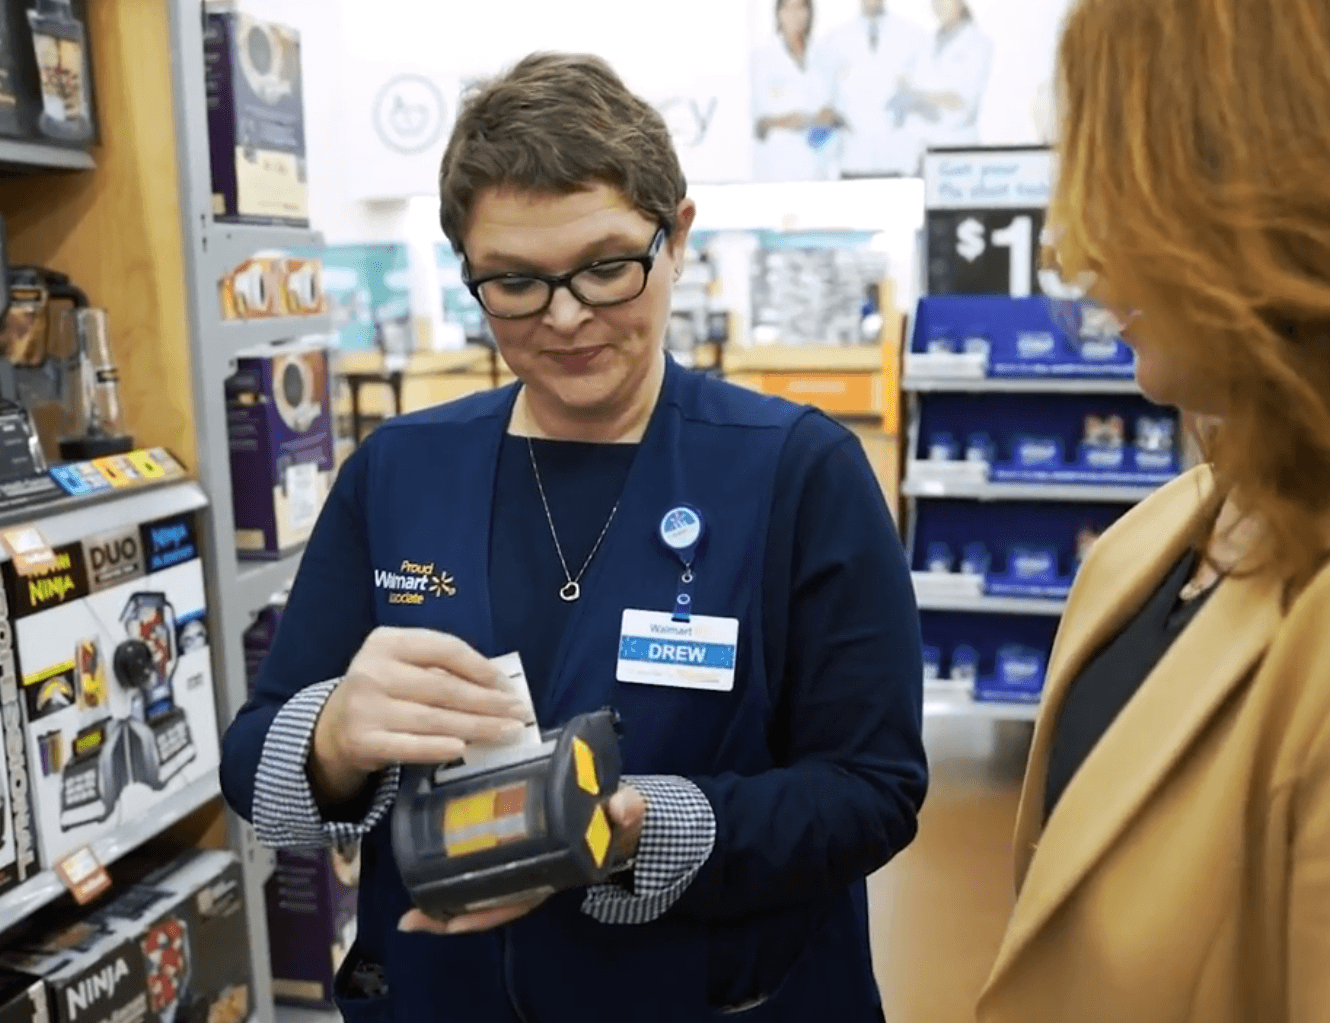 Walmart's New Way to Shop In-Store, Purchase Online